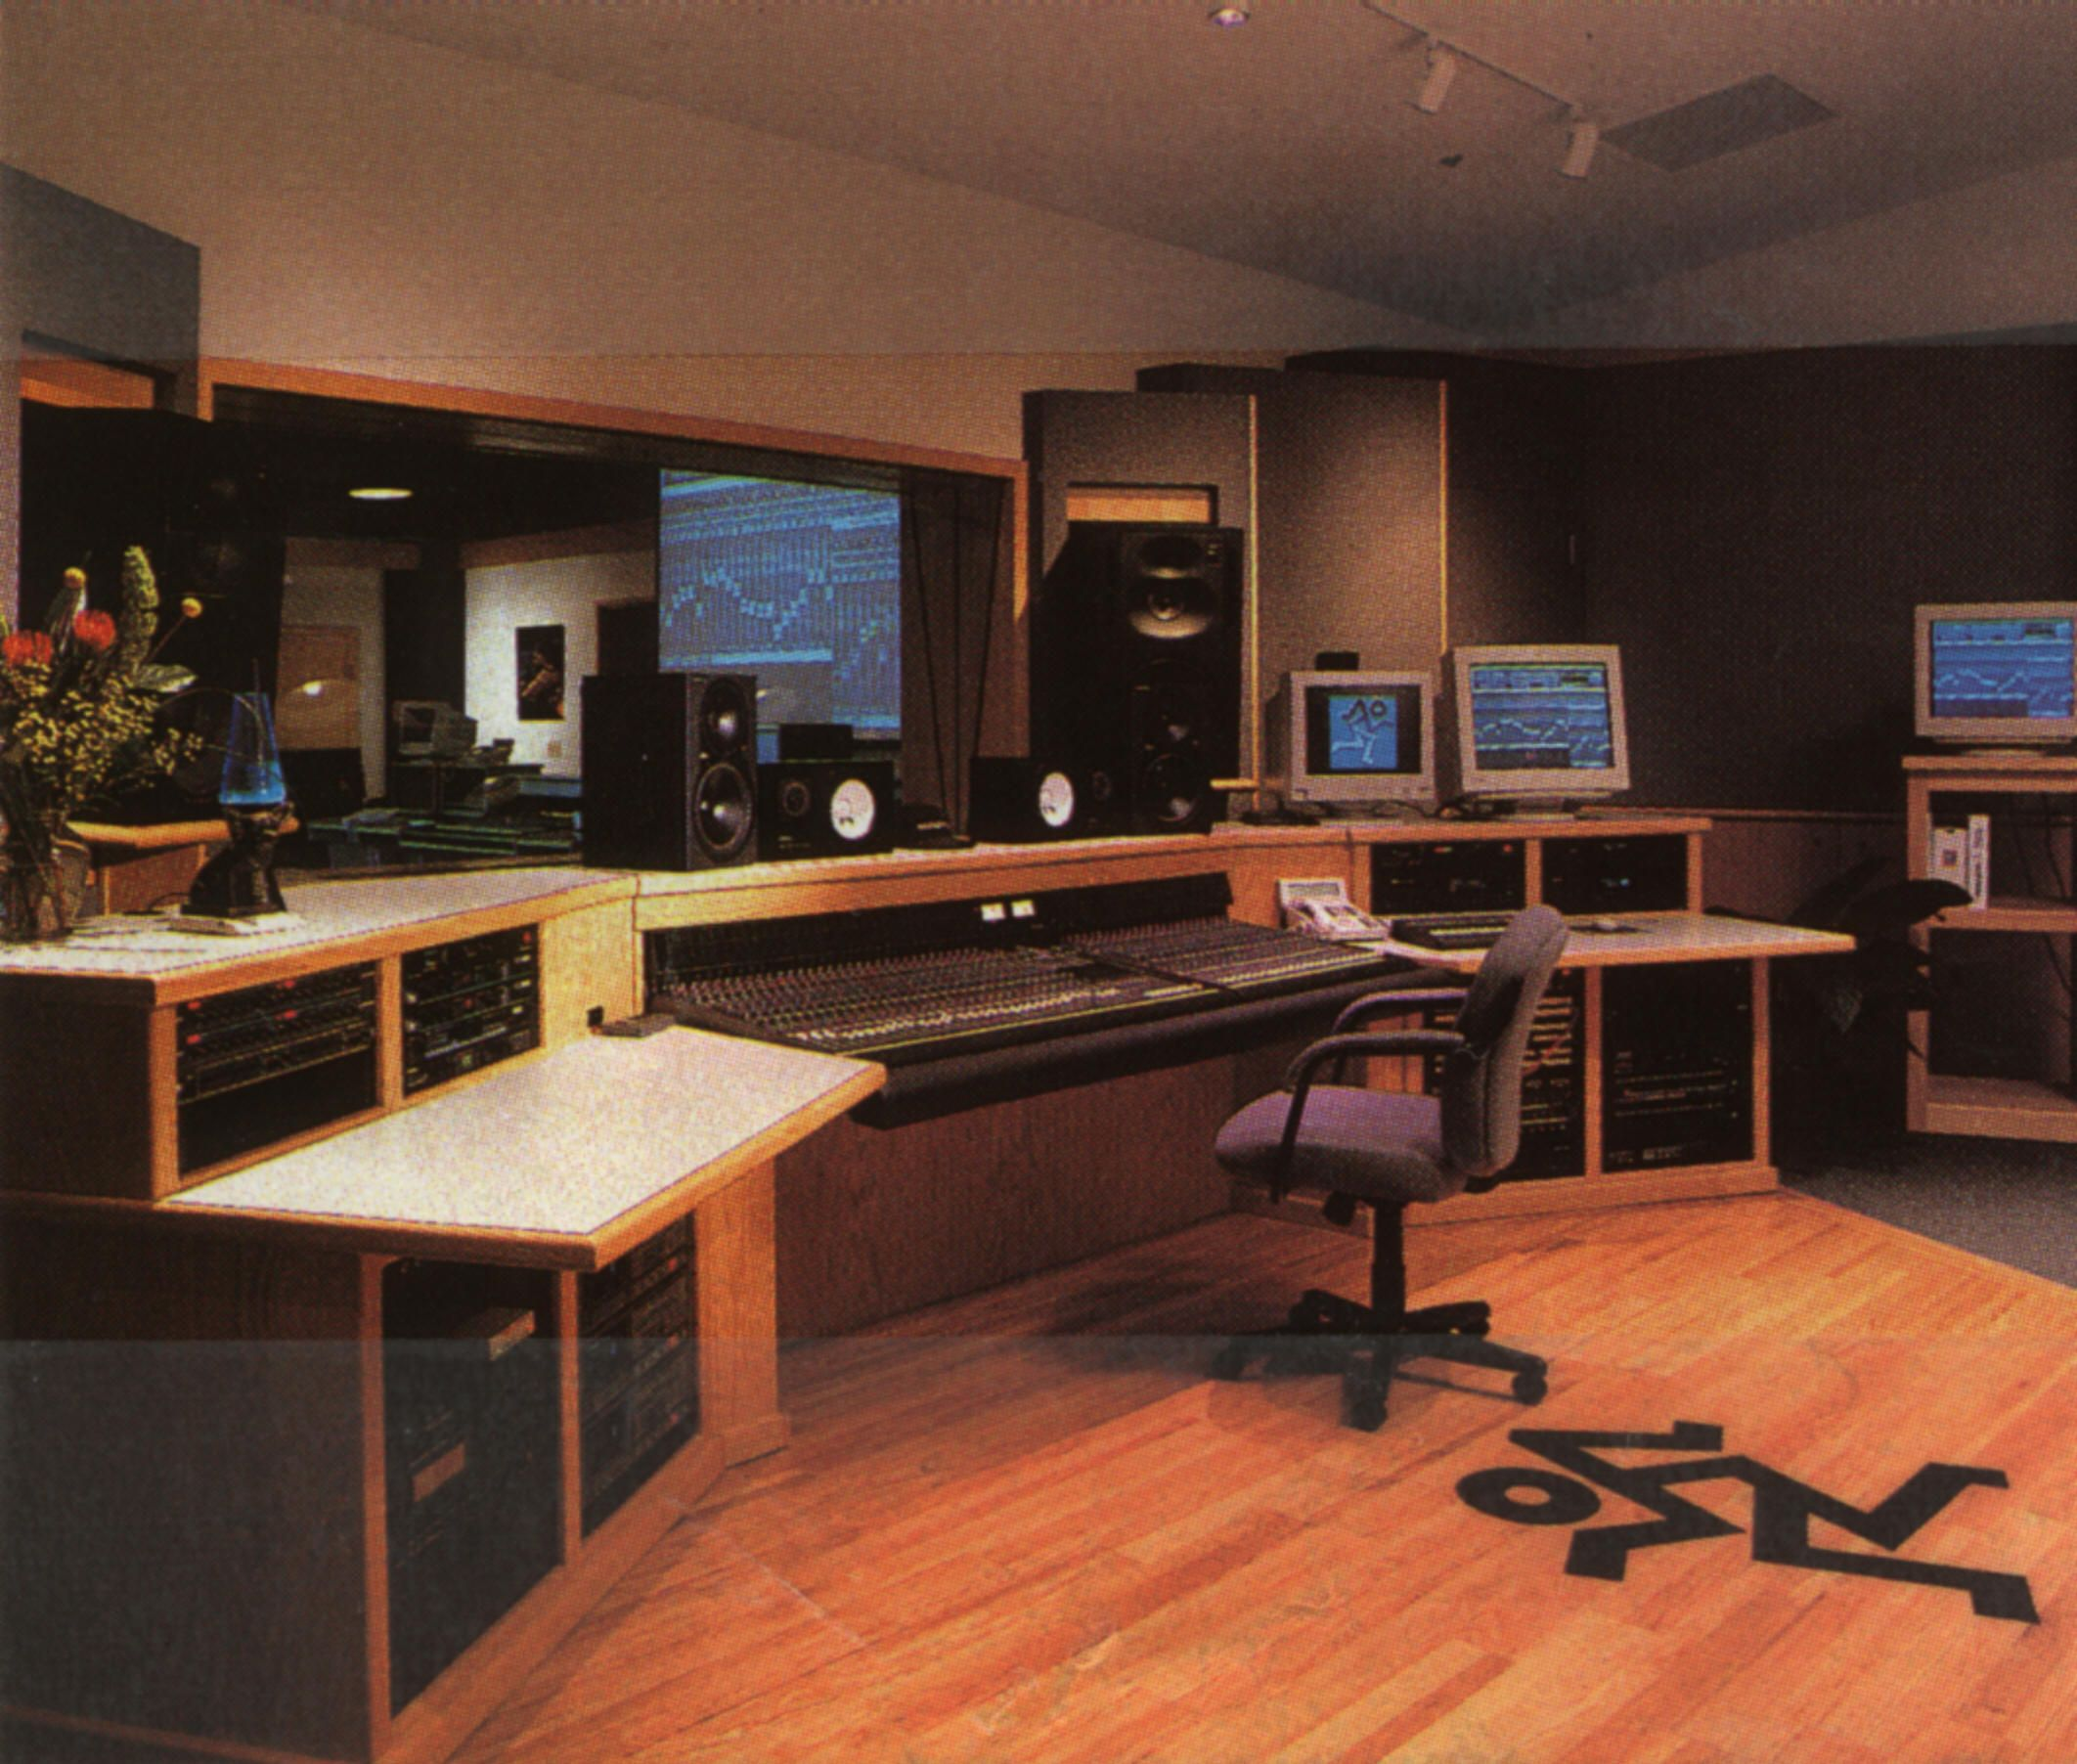 Stupendous 17 Best Images About Studio On Pinterest Music Rooms Edm Music Inspirational Interior Design Netriciaus